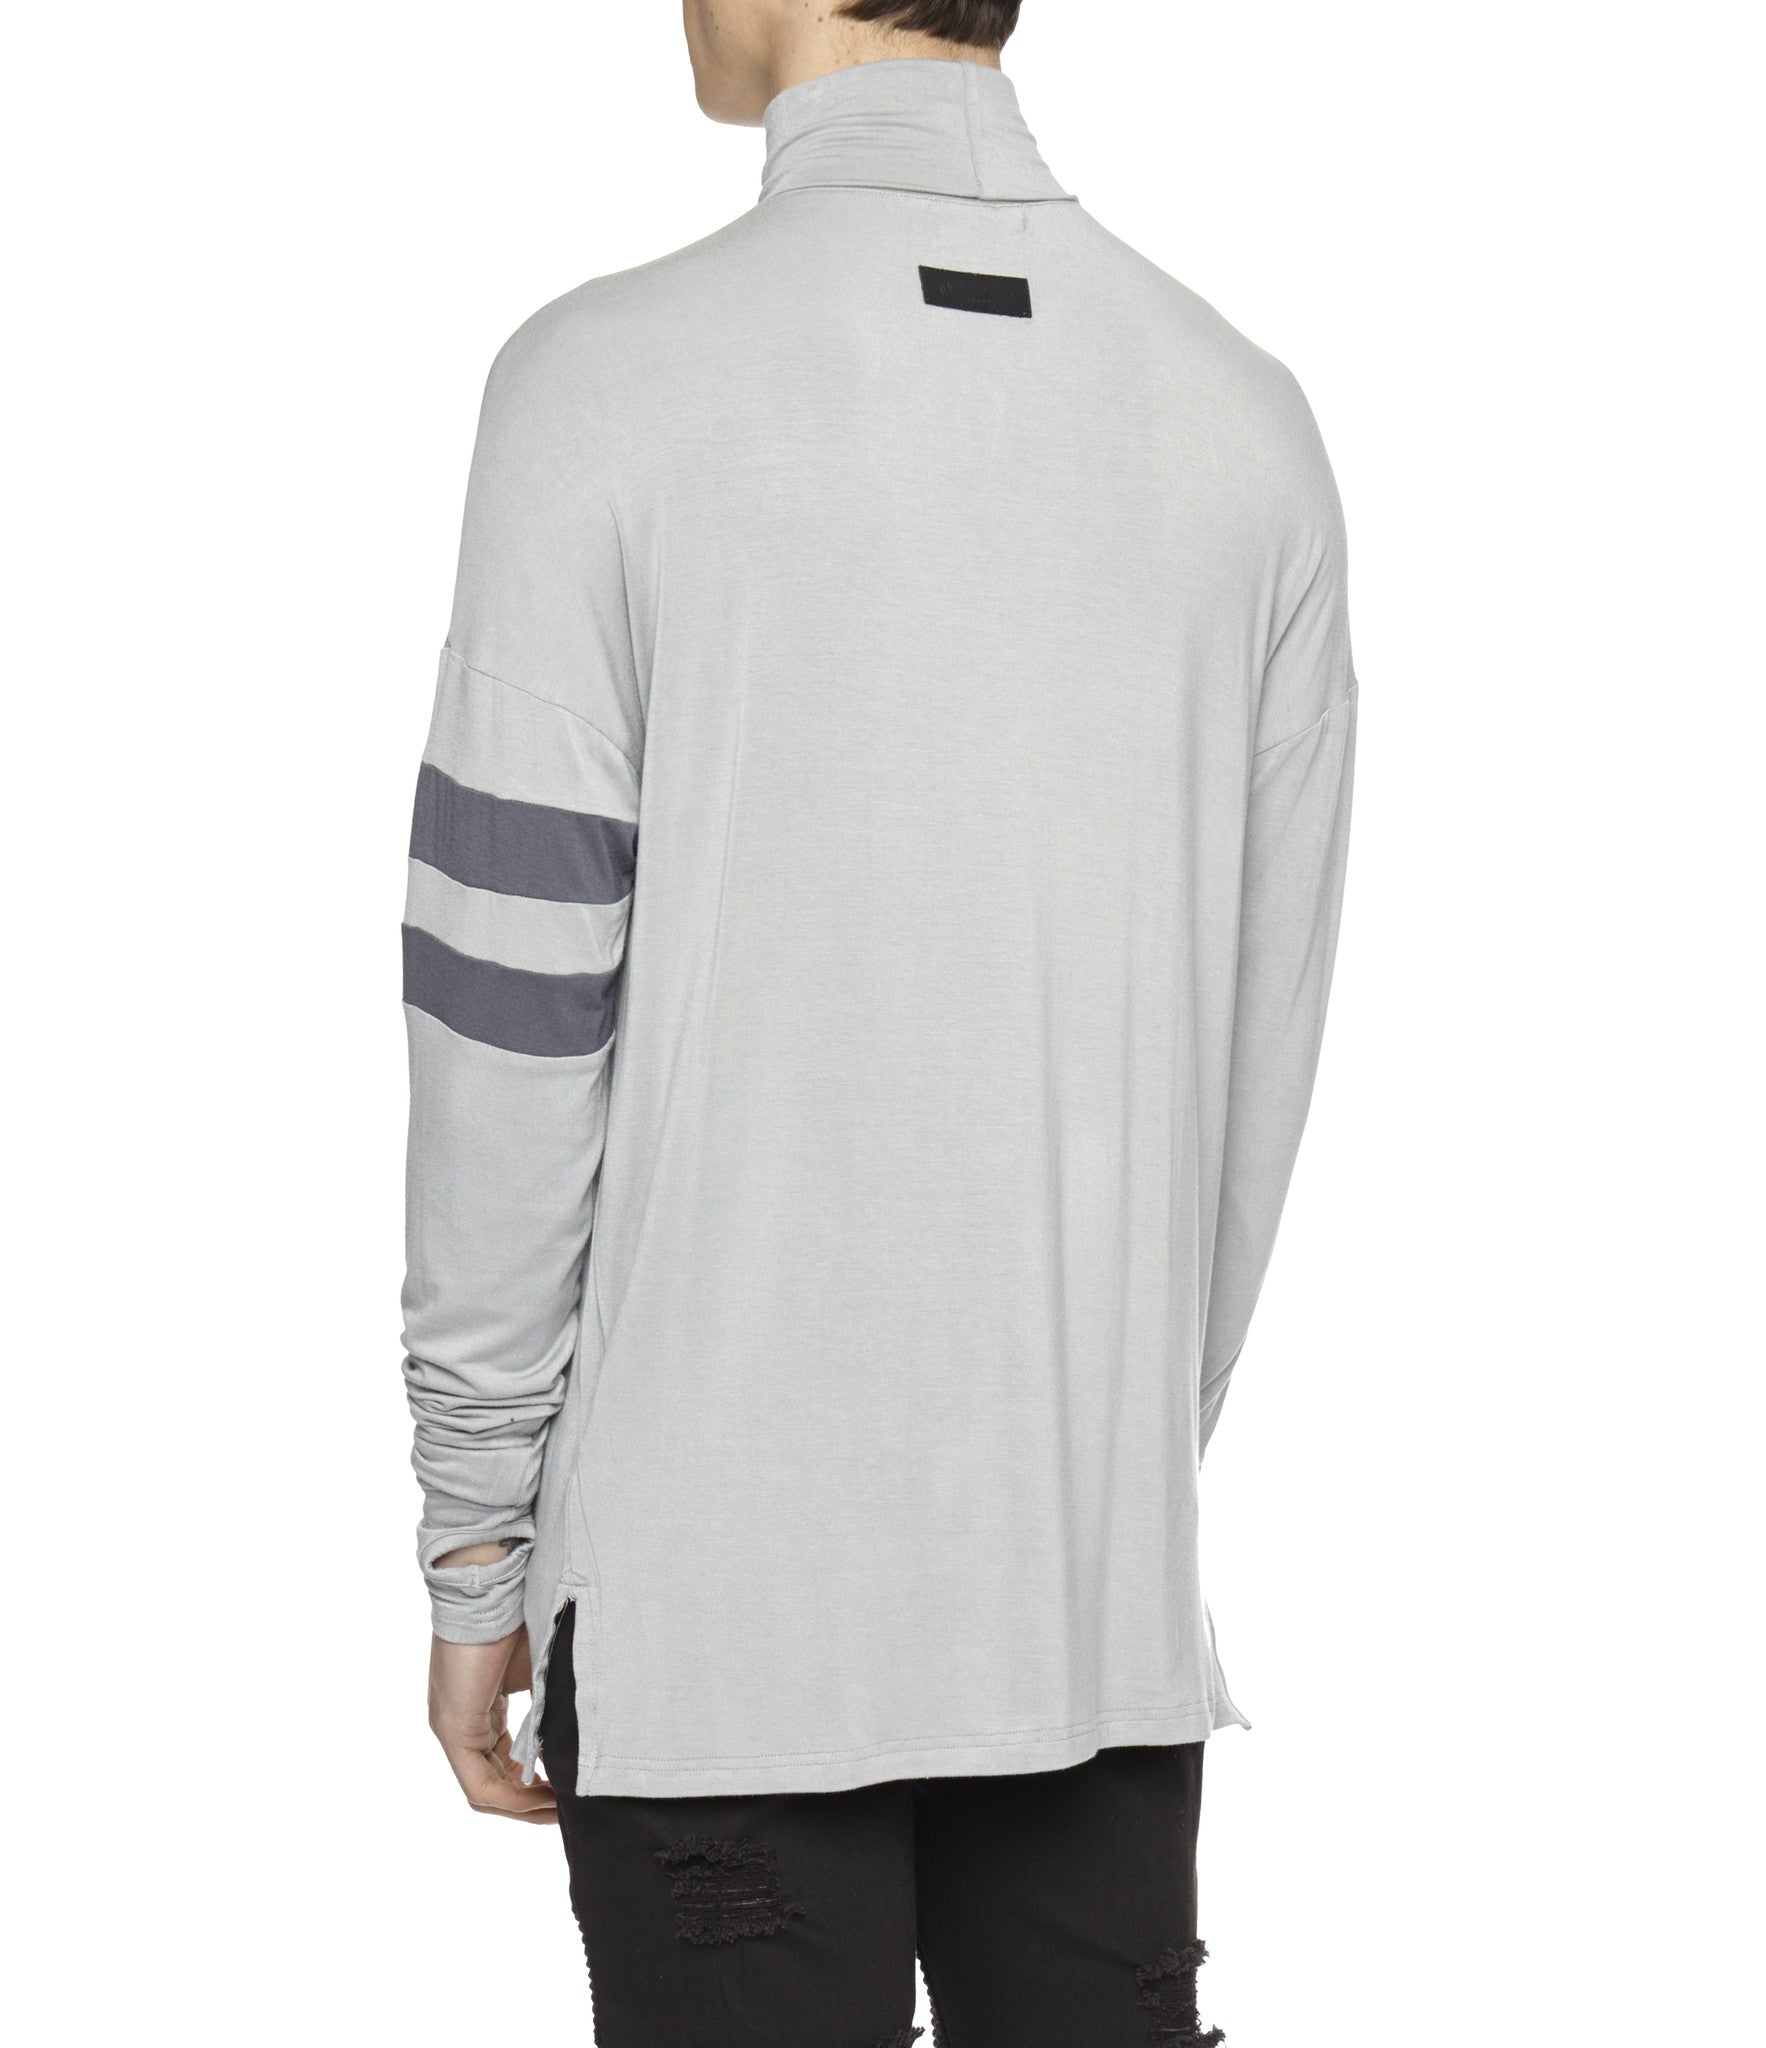 LS105 Roll Neck Under Layer L/S Tee - Ash Grey - underated london - underatedco - 5